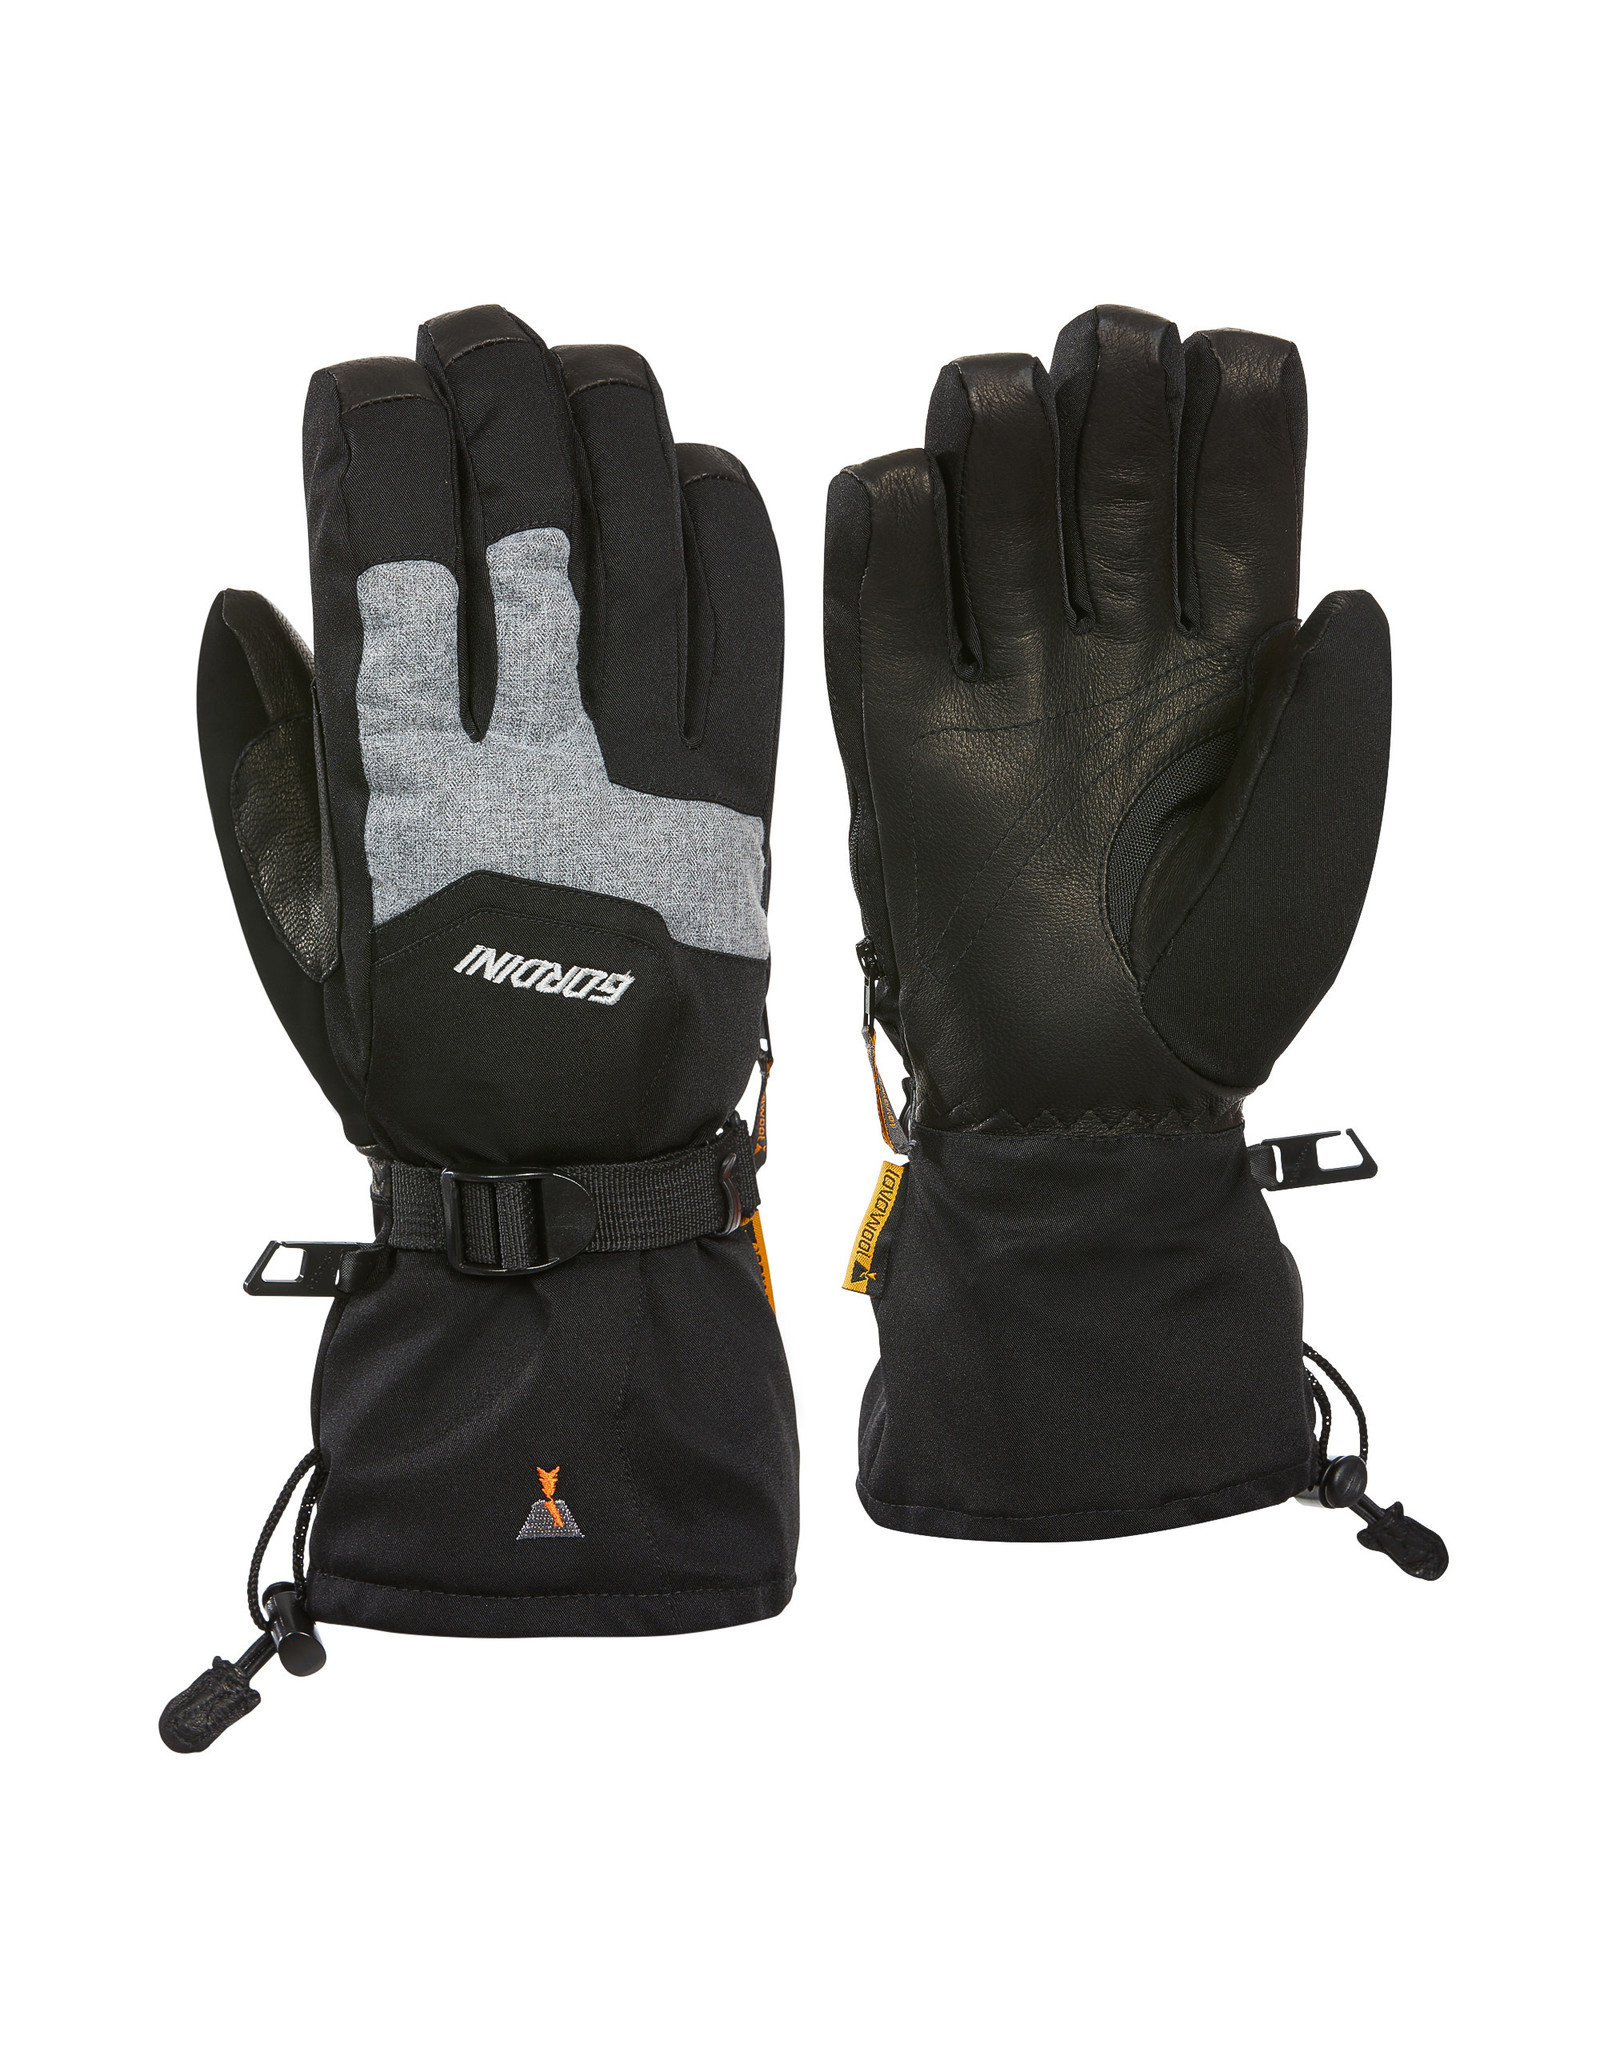 GORDINI GORDINI THE TWO STEP GLOVE BLACK-GREY MELANGE 20